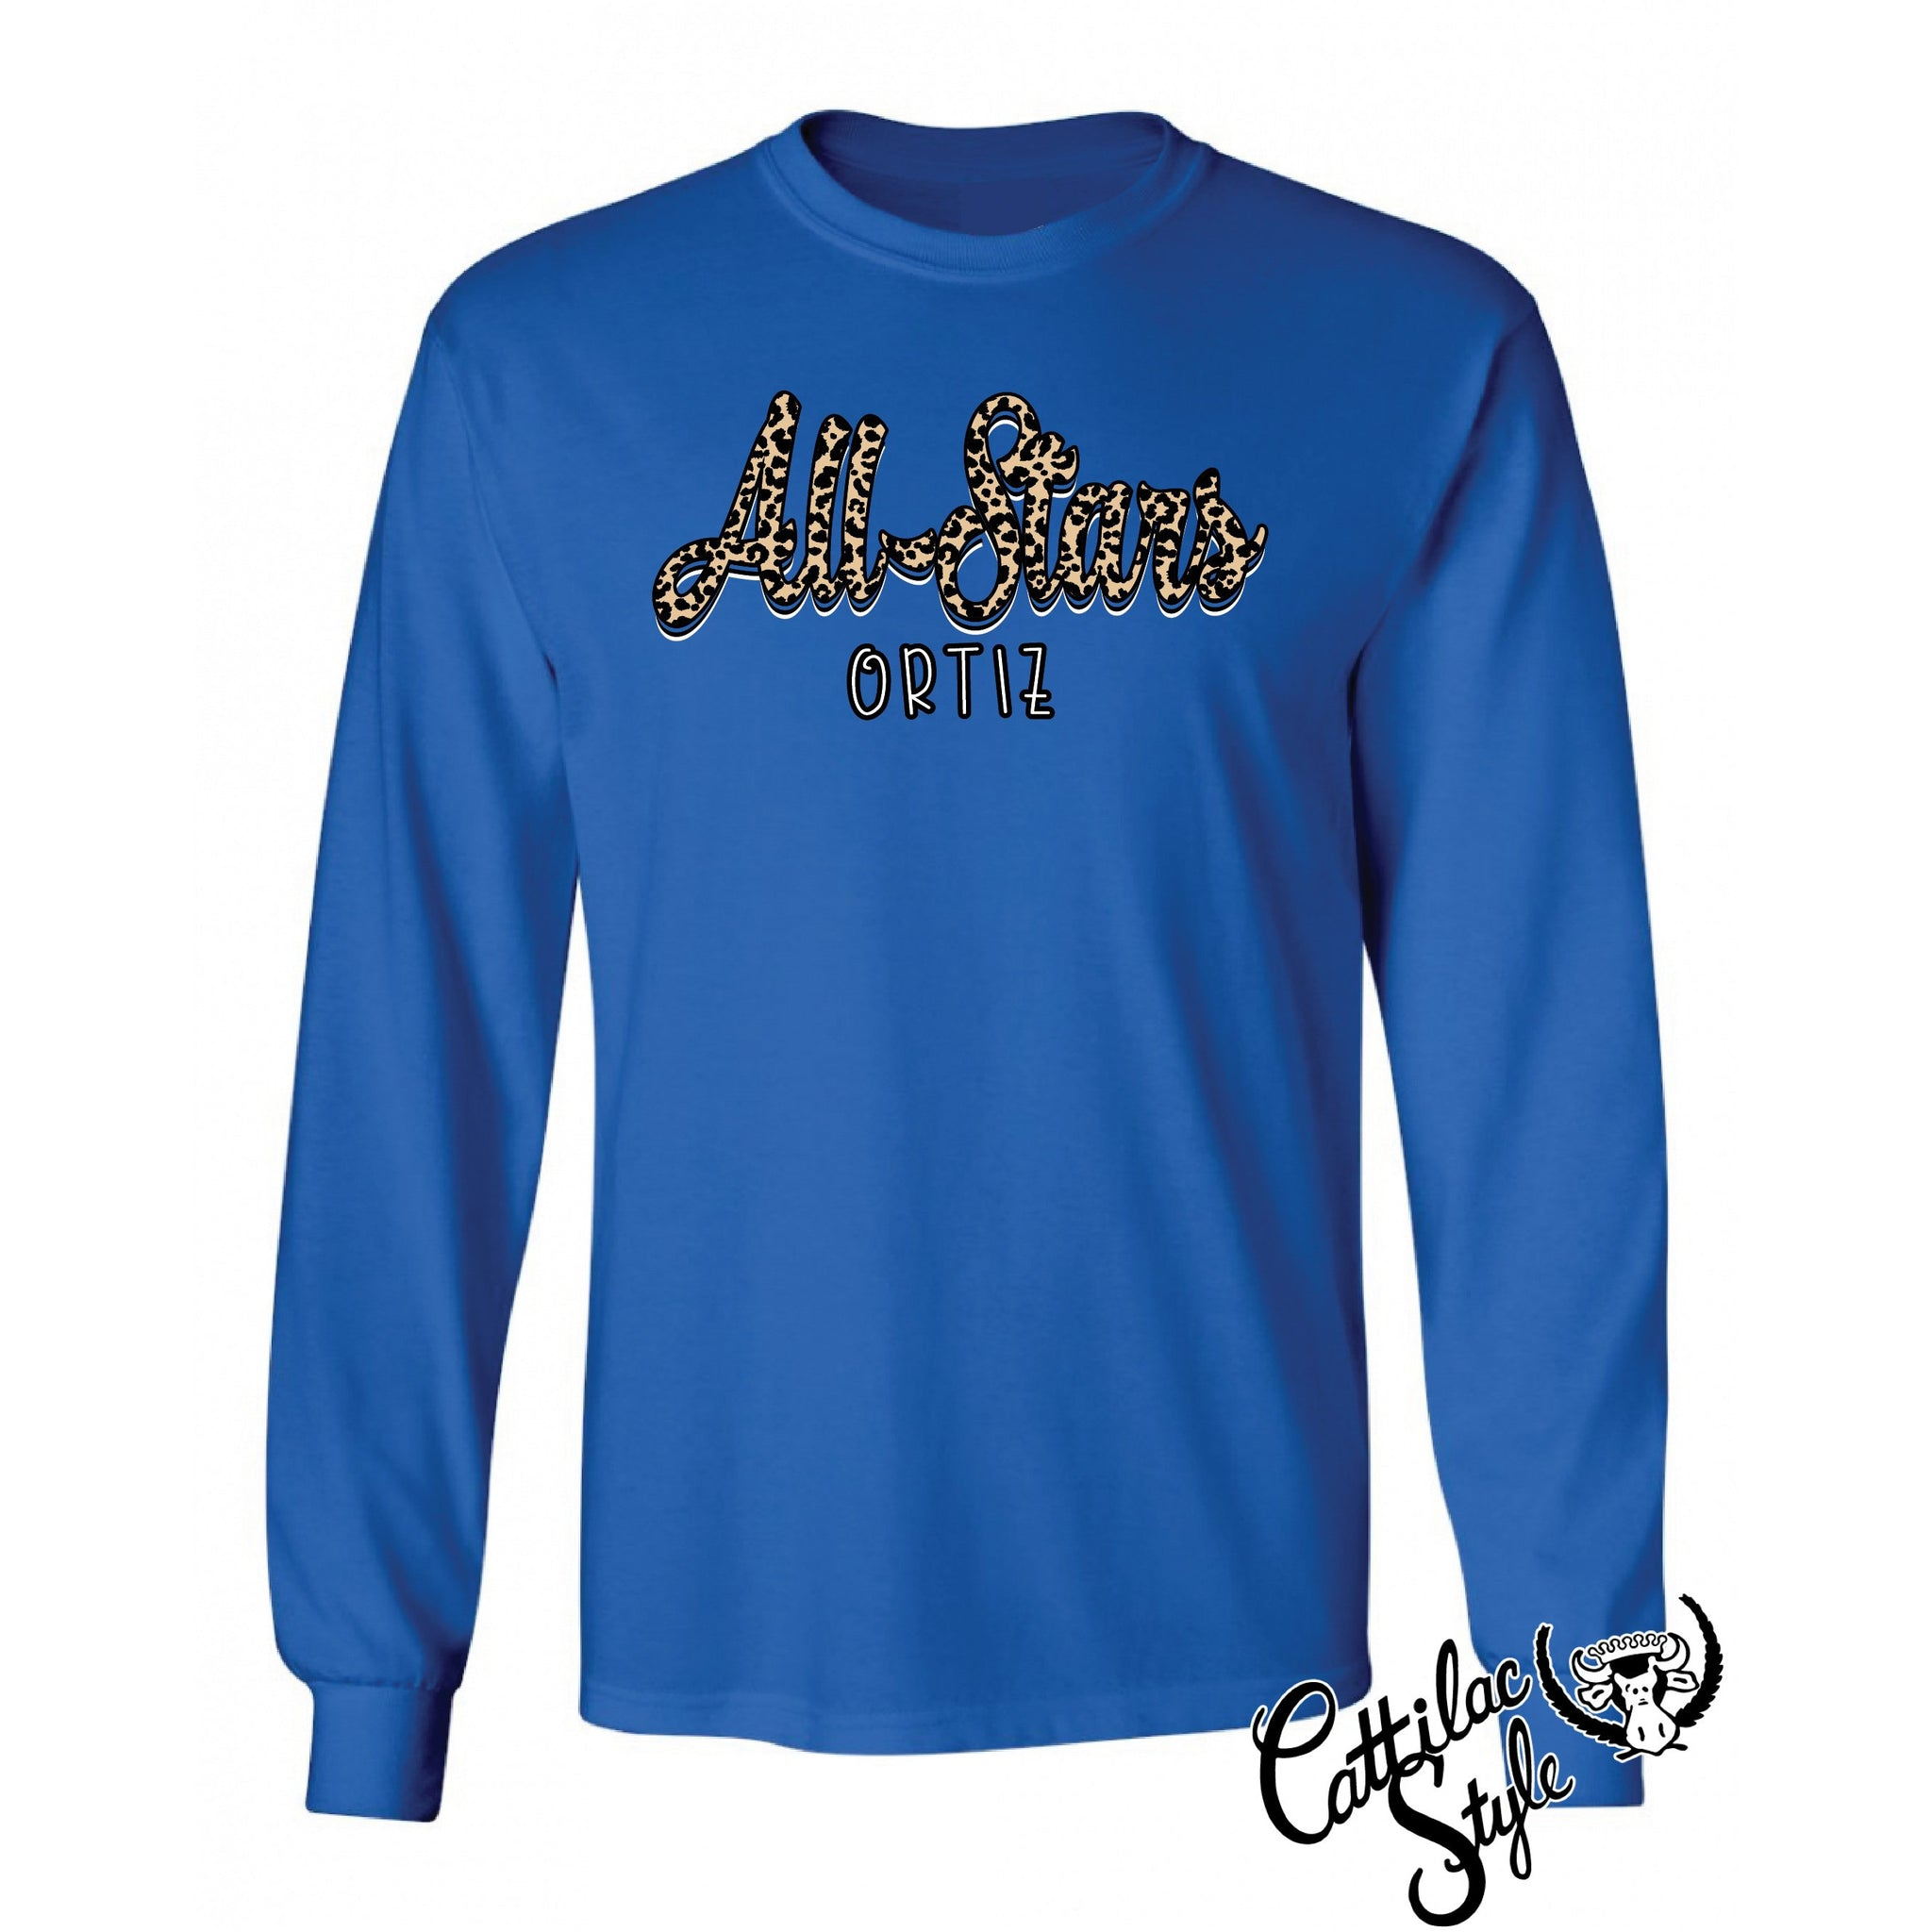 Ortiz All-Stars - Animal Print Script Long Sleeve T-Shirt